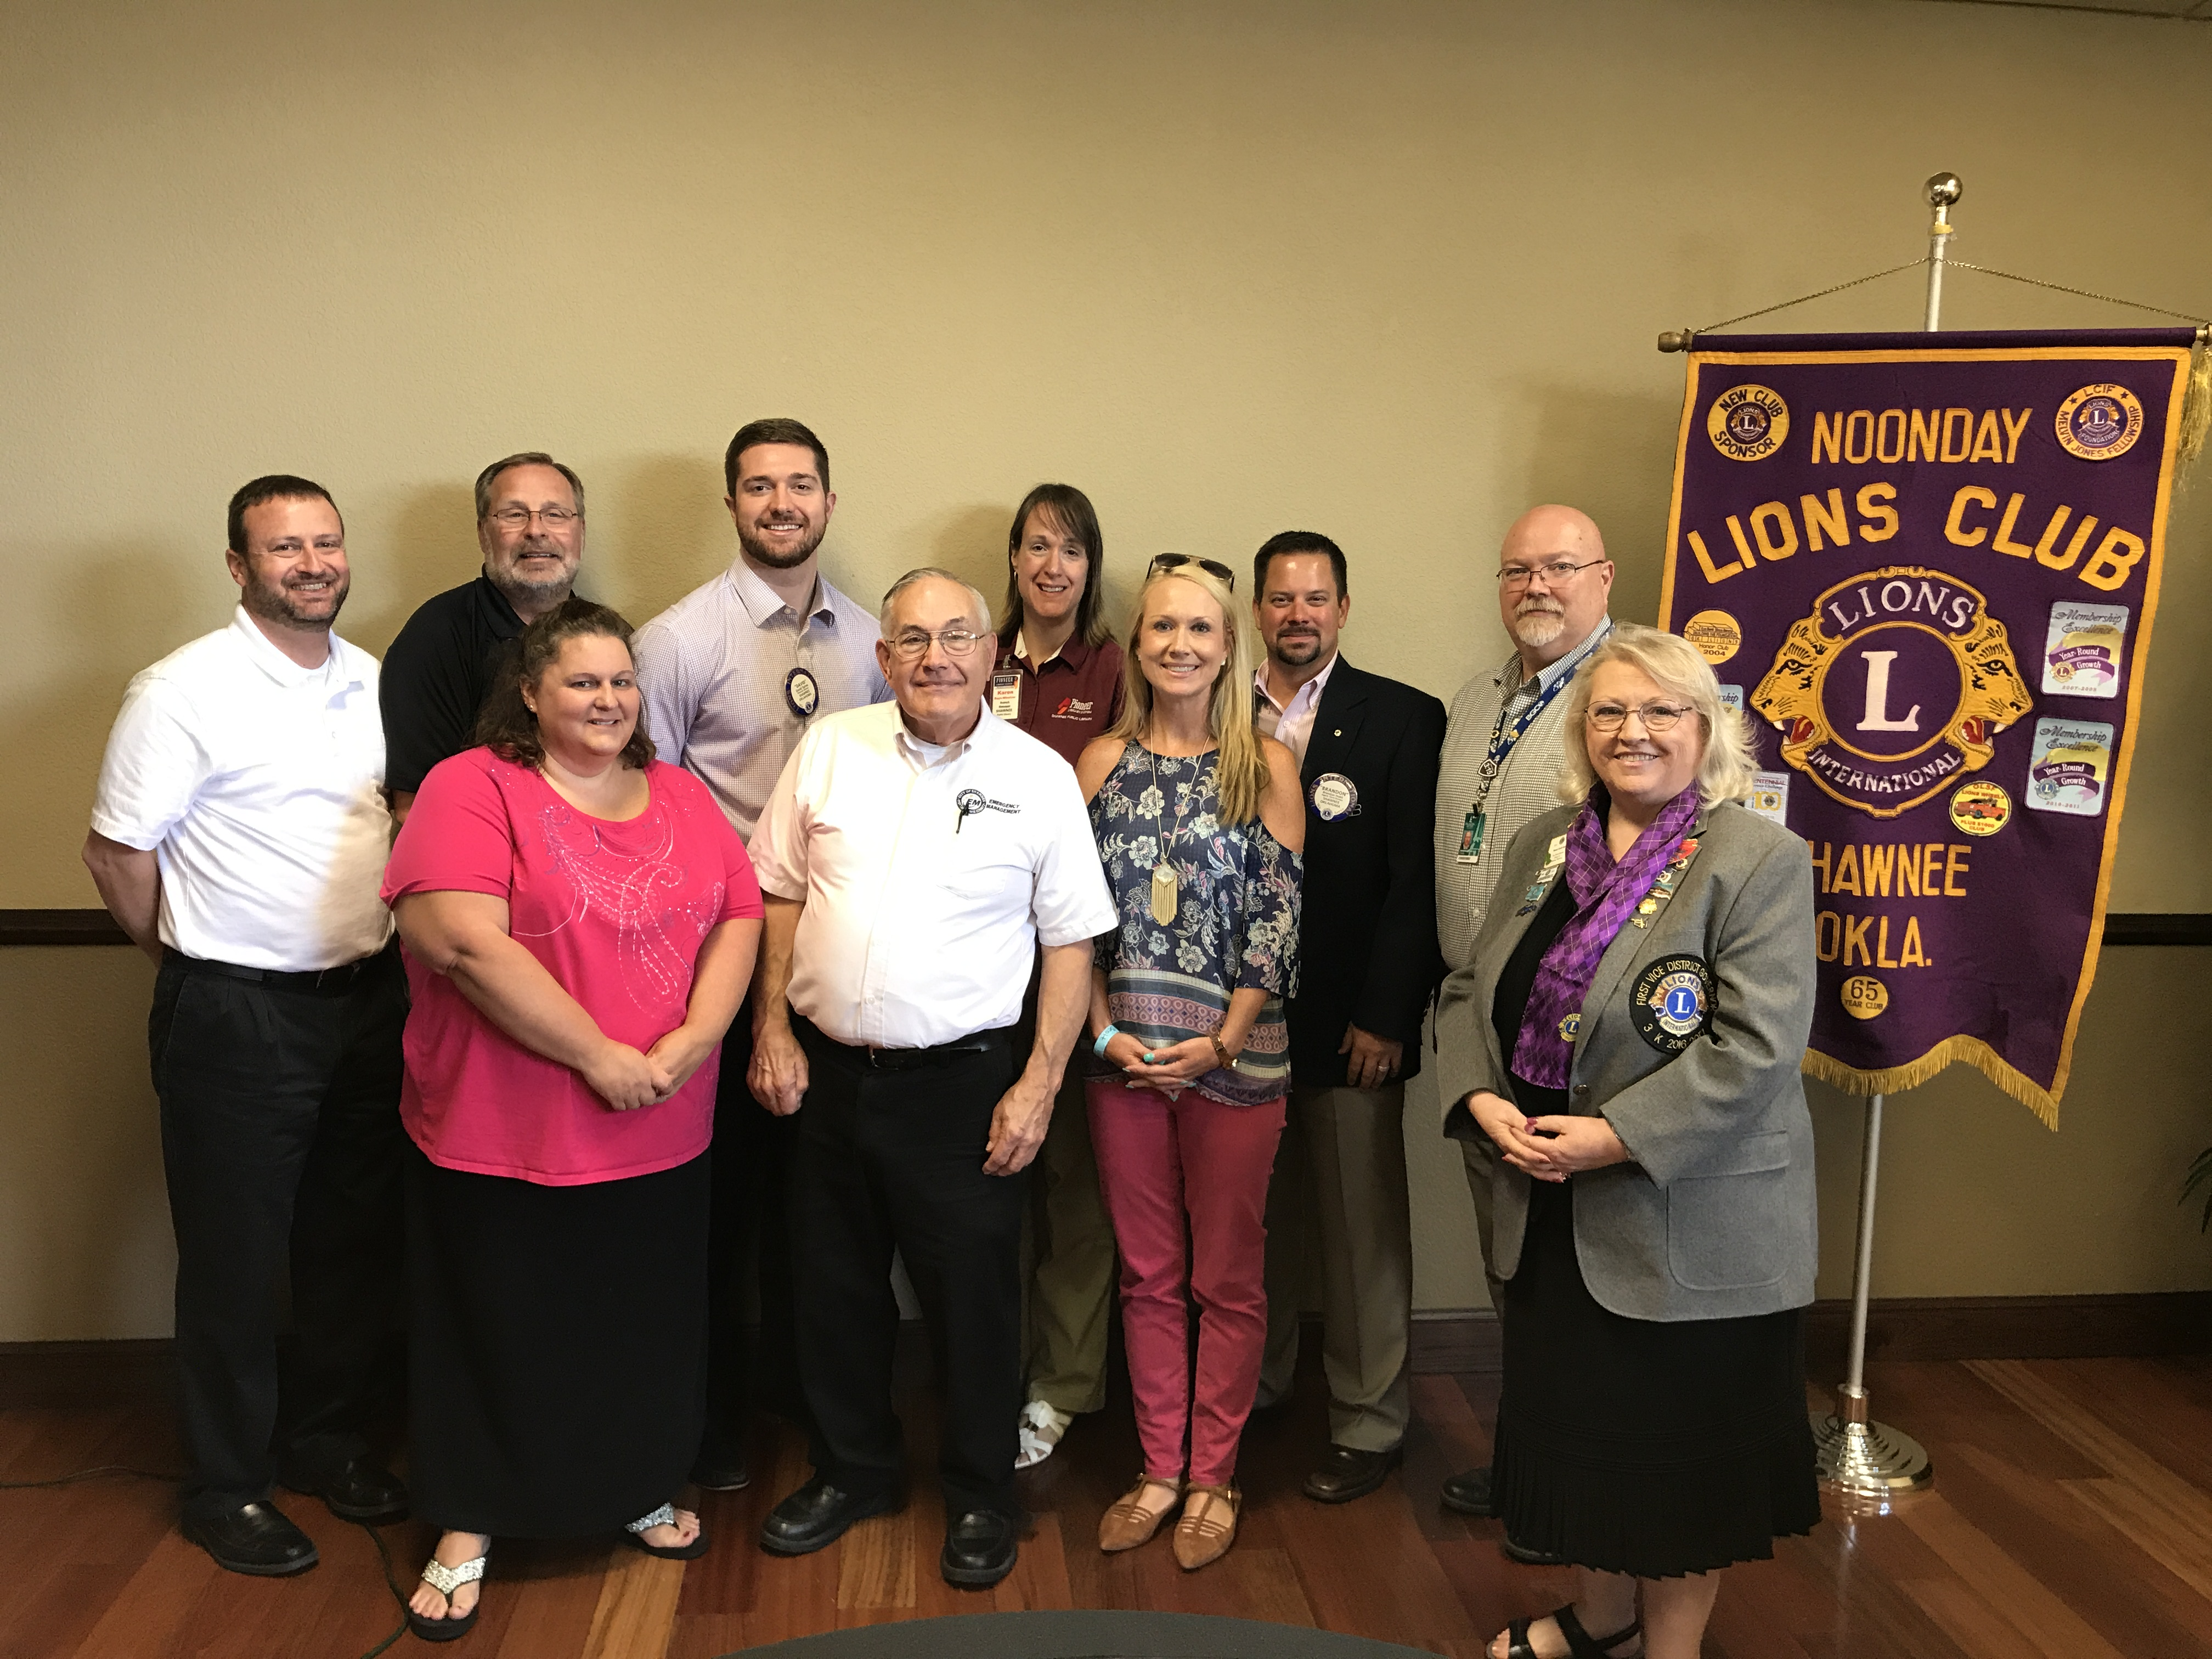 Shawnee Lions Club Board